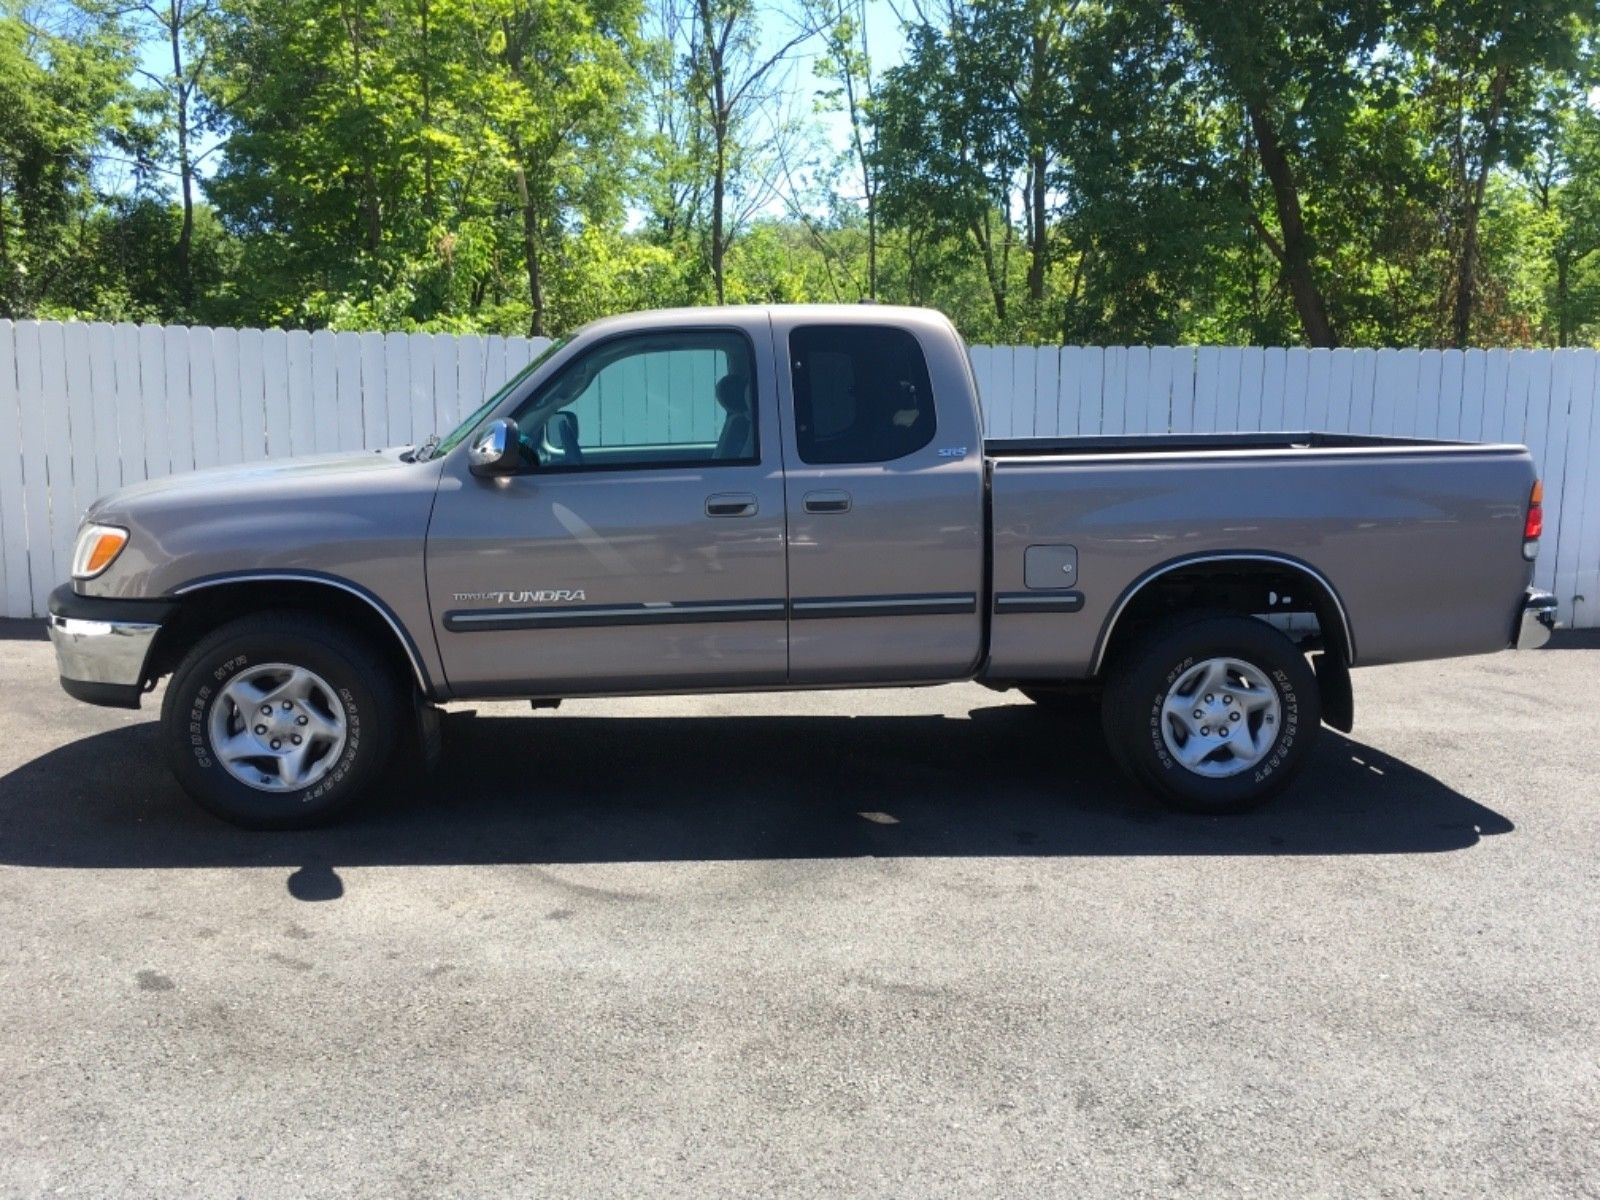 Awesome 2002 Toyota Tundra SR5 2002 Toyota Tundra SR5 4wd 4 7 Liter i-Force  Low Miles Accident Free AutoCheck 2018-2019